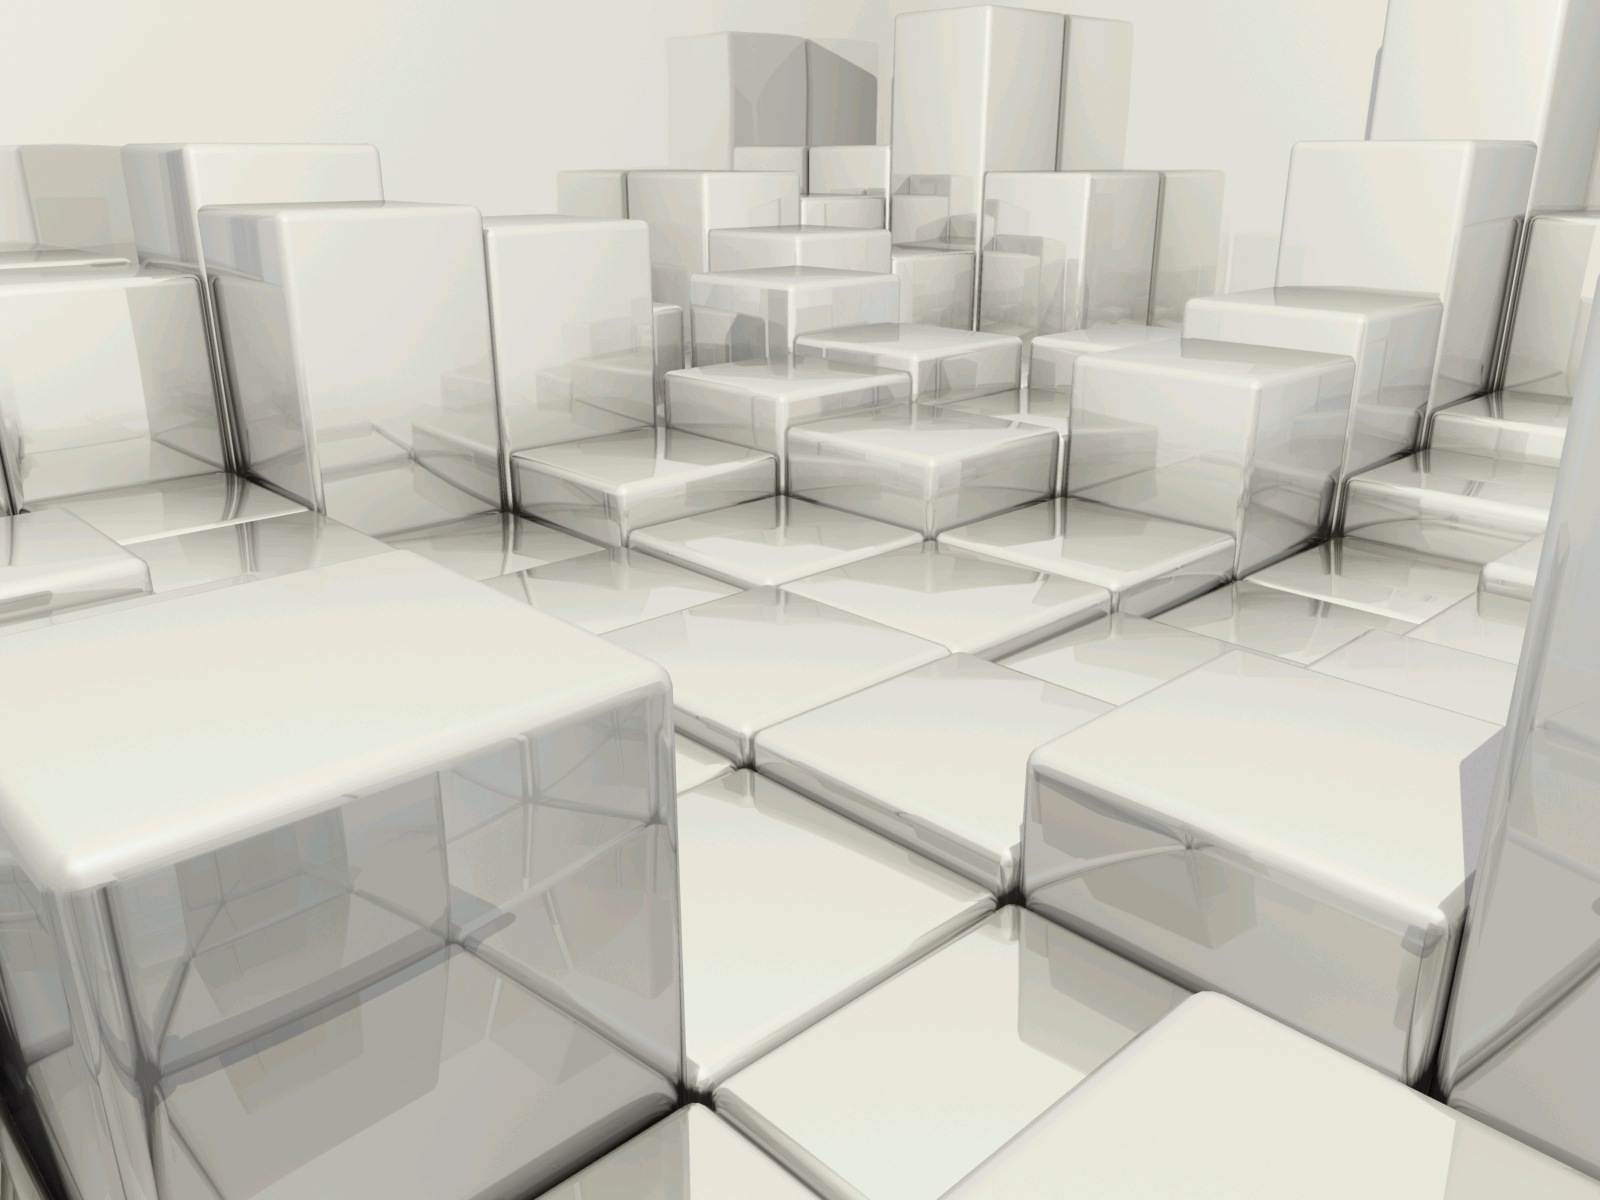 Cubes Levels 1600X1200 3D Wallpaper World Wallpaper Collection 1600x1200